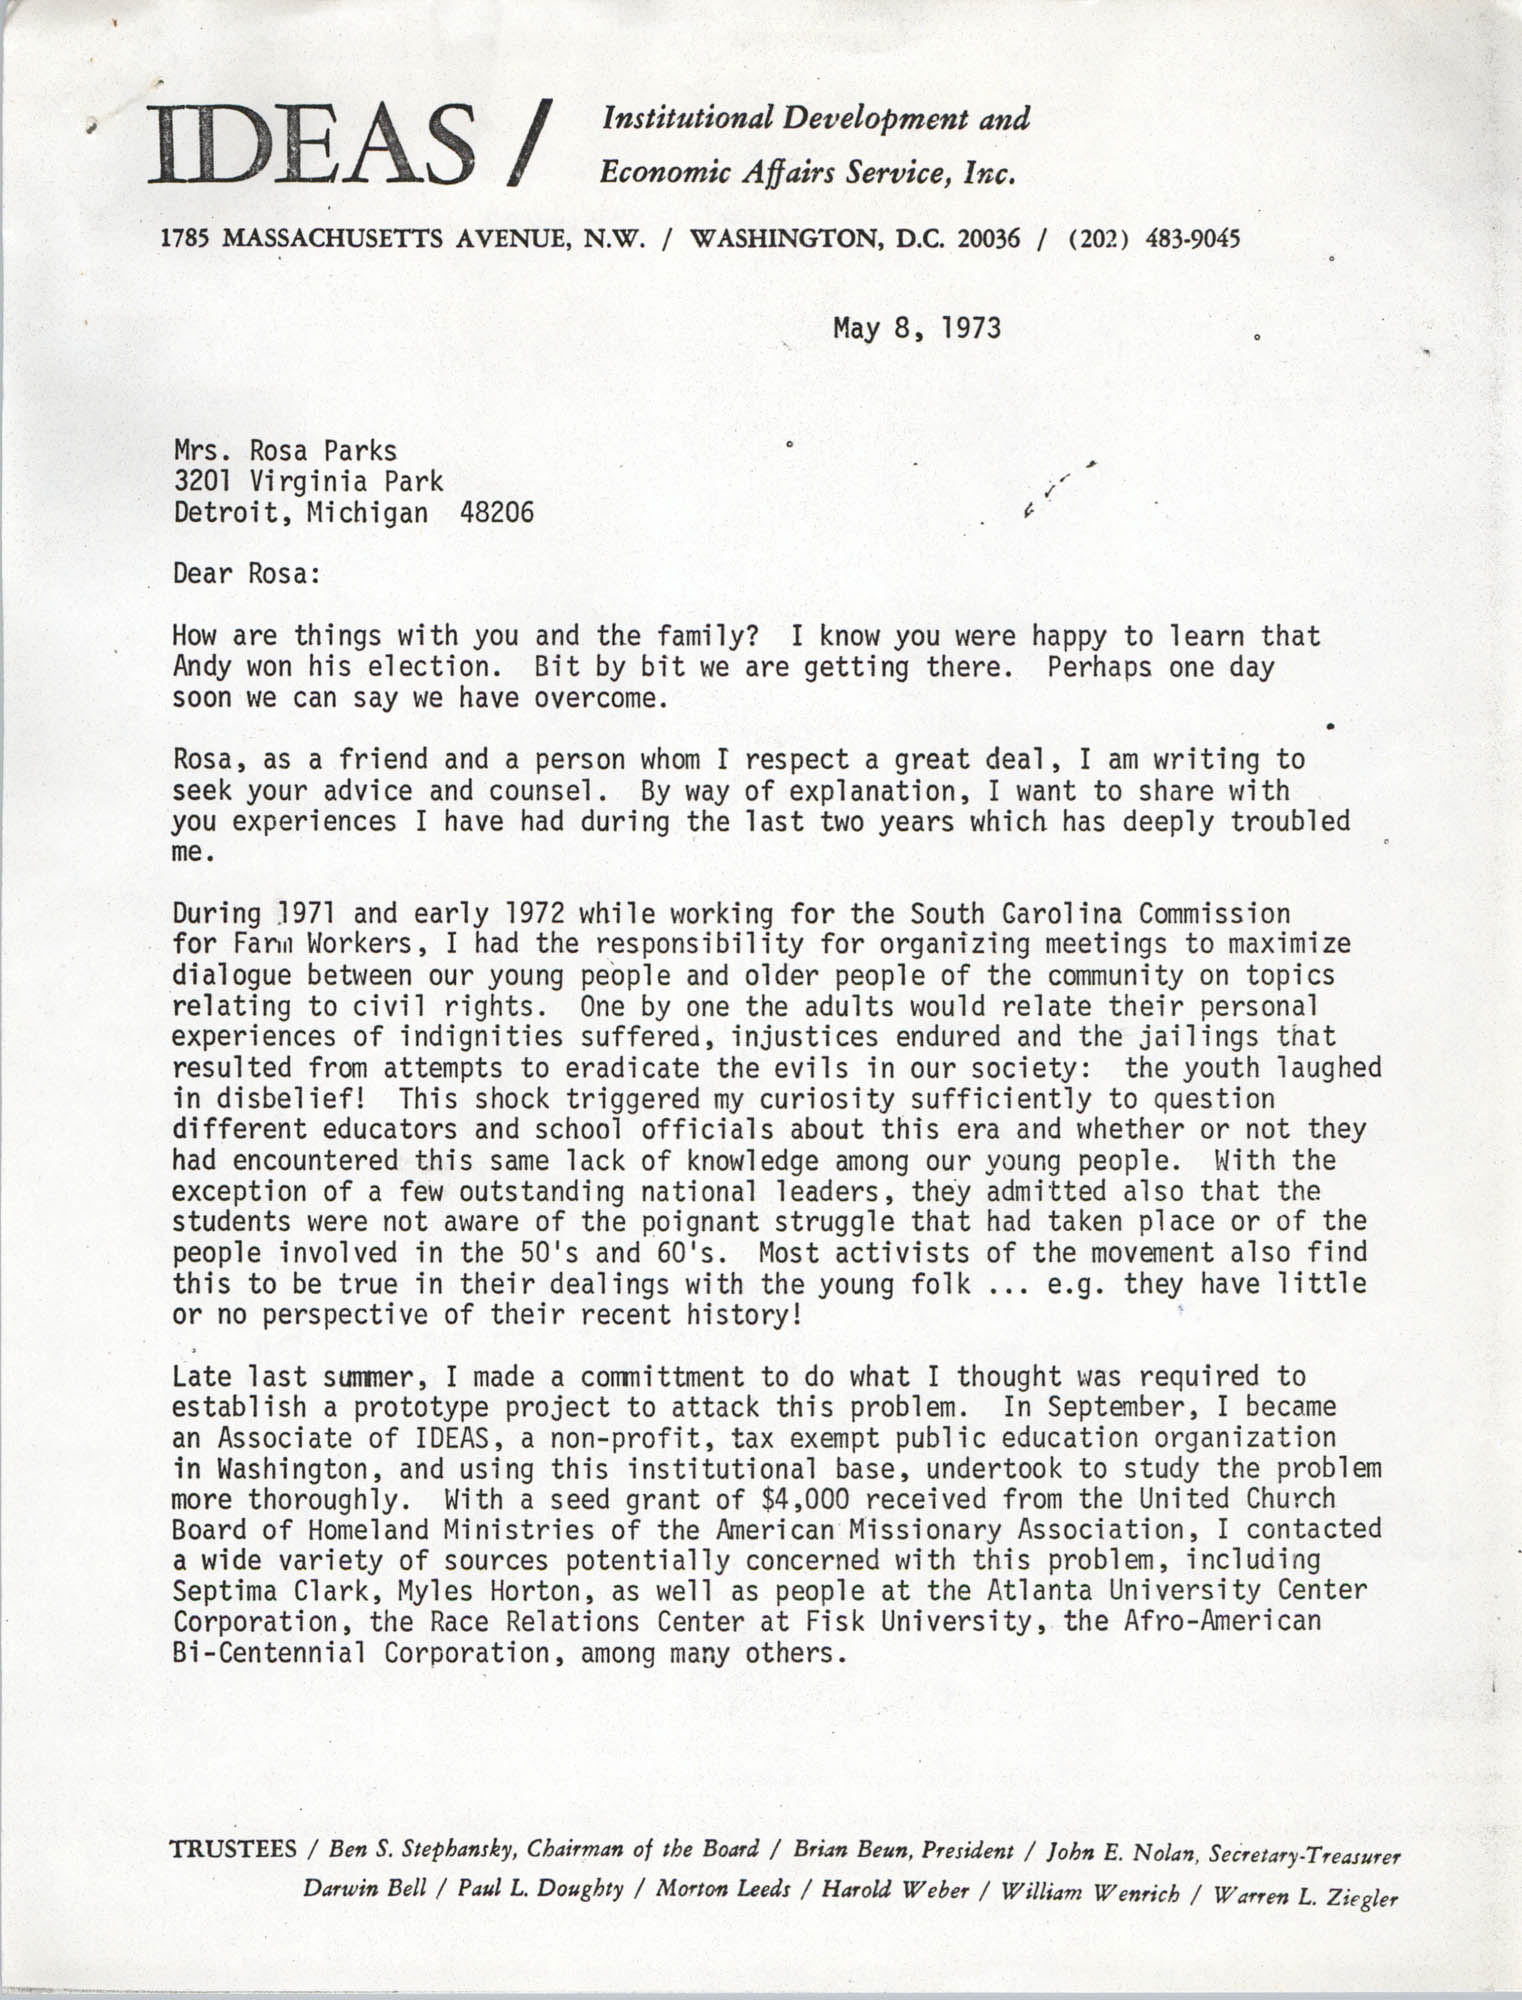 Letter from Bernice Robinson to Rosa Parks, May 8, 1973, Page 1